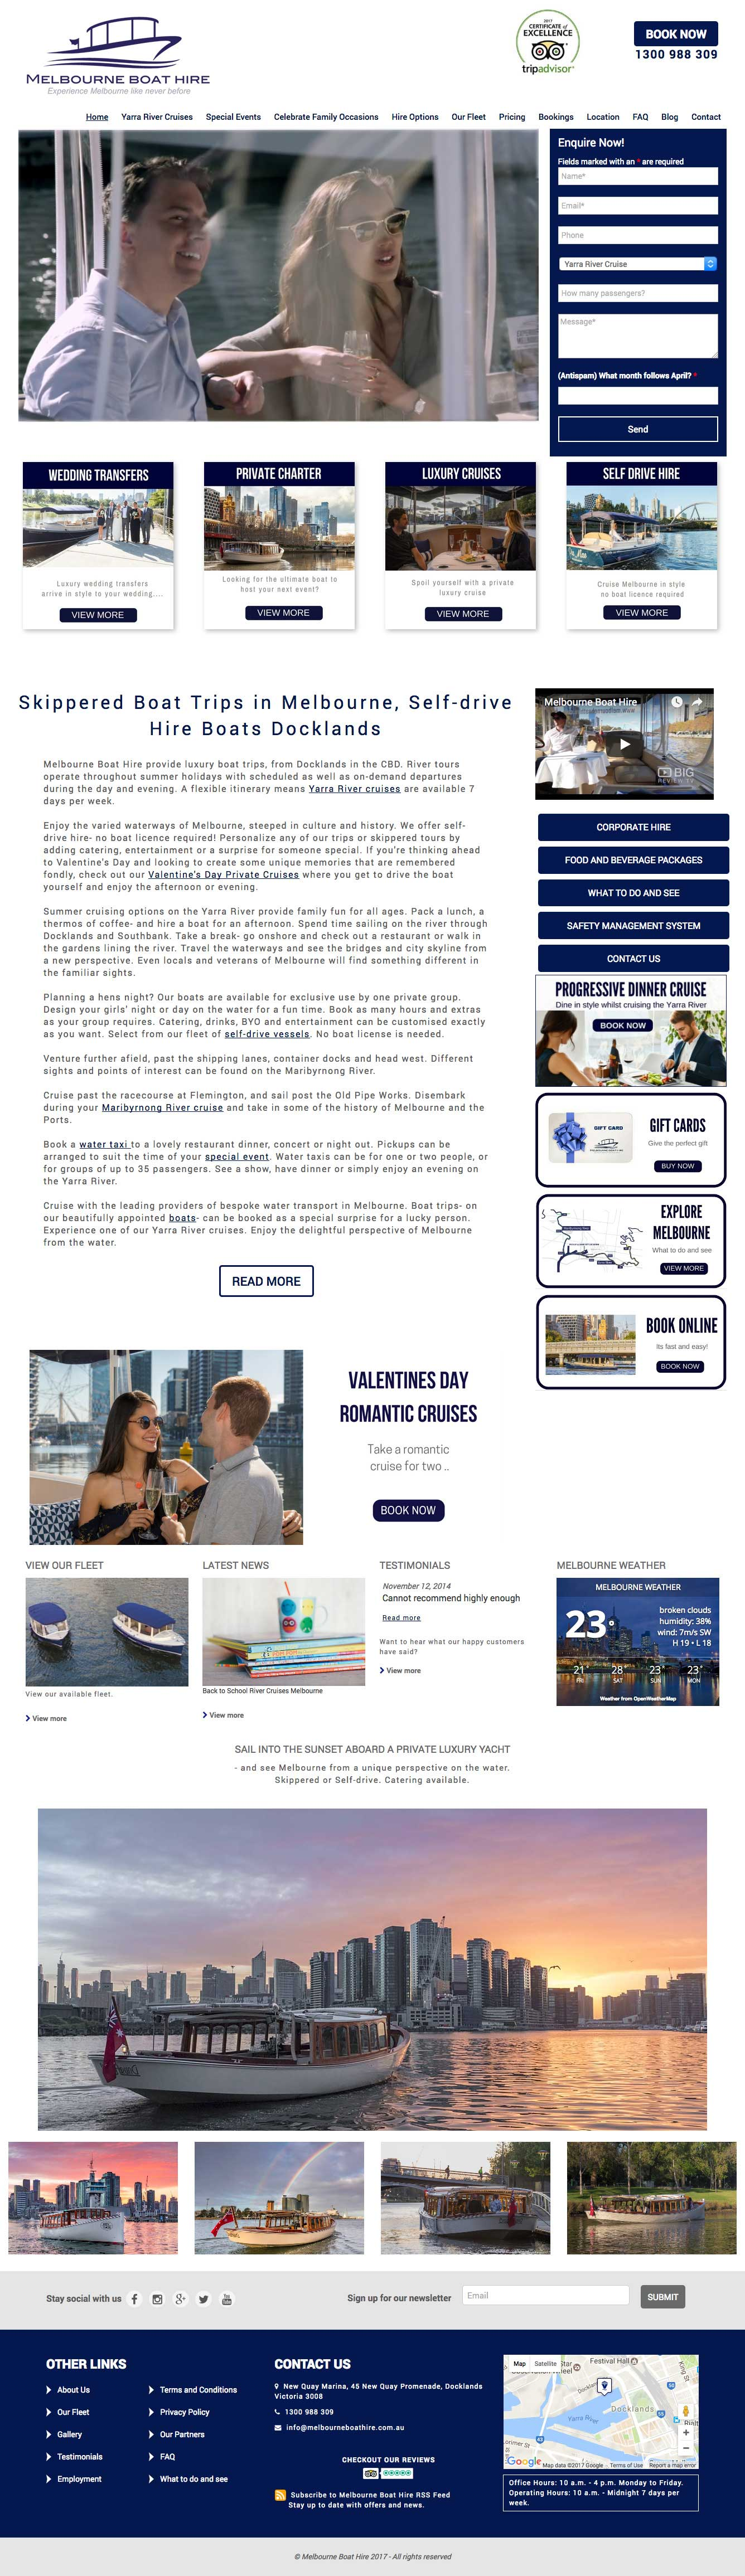 wordpress website designer in melbourne portfolio image